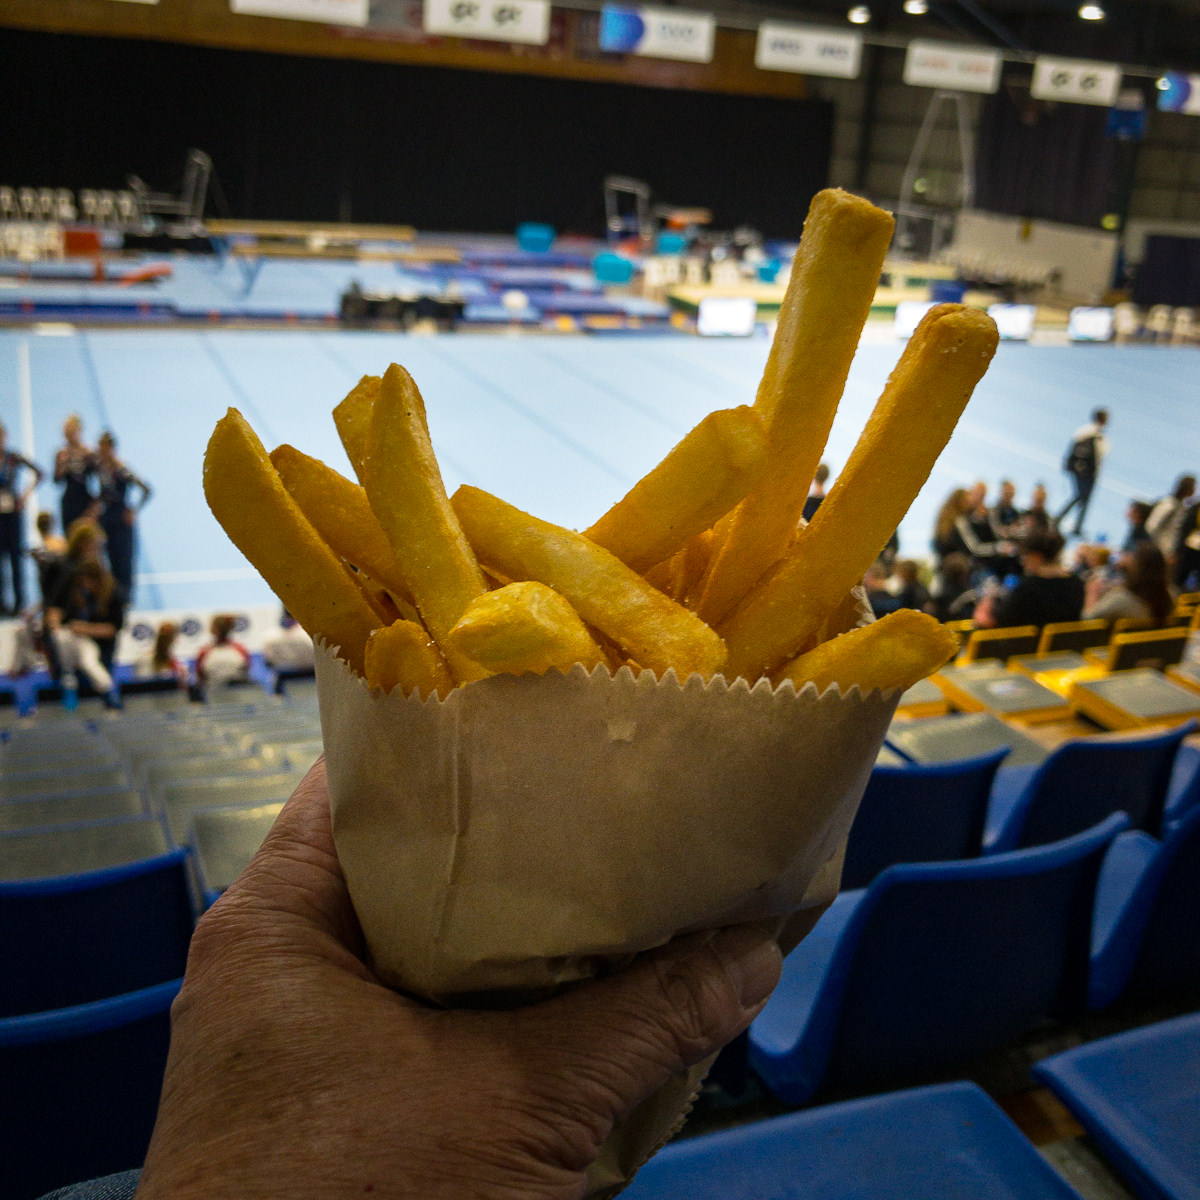 Hot chips 🍟 while watching gymnastics Gary Lum